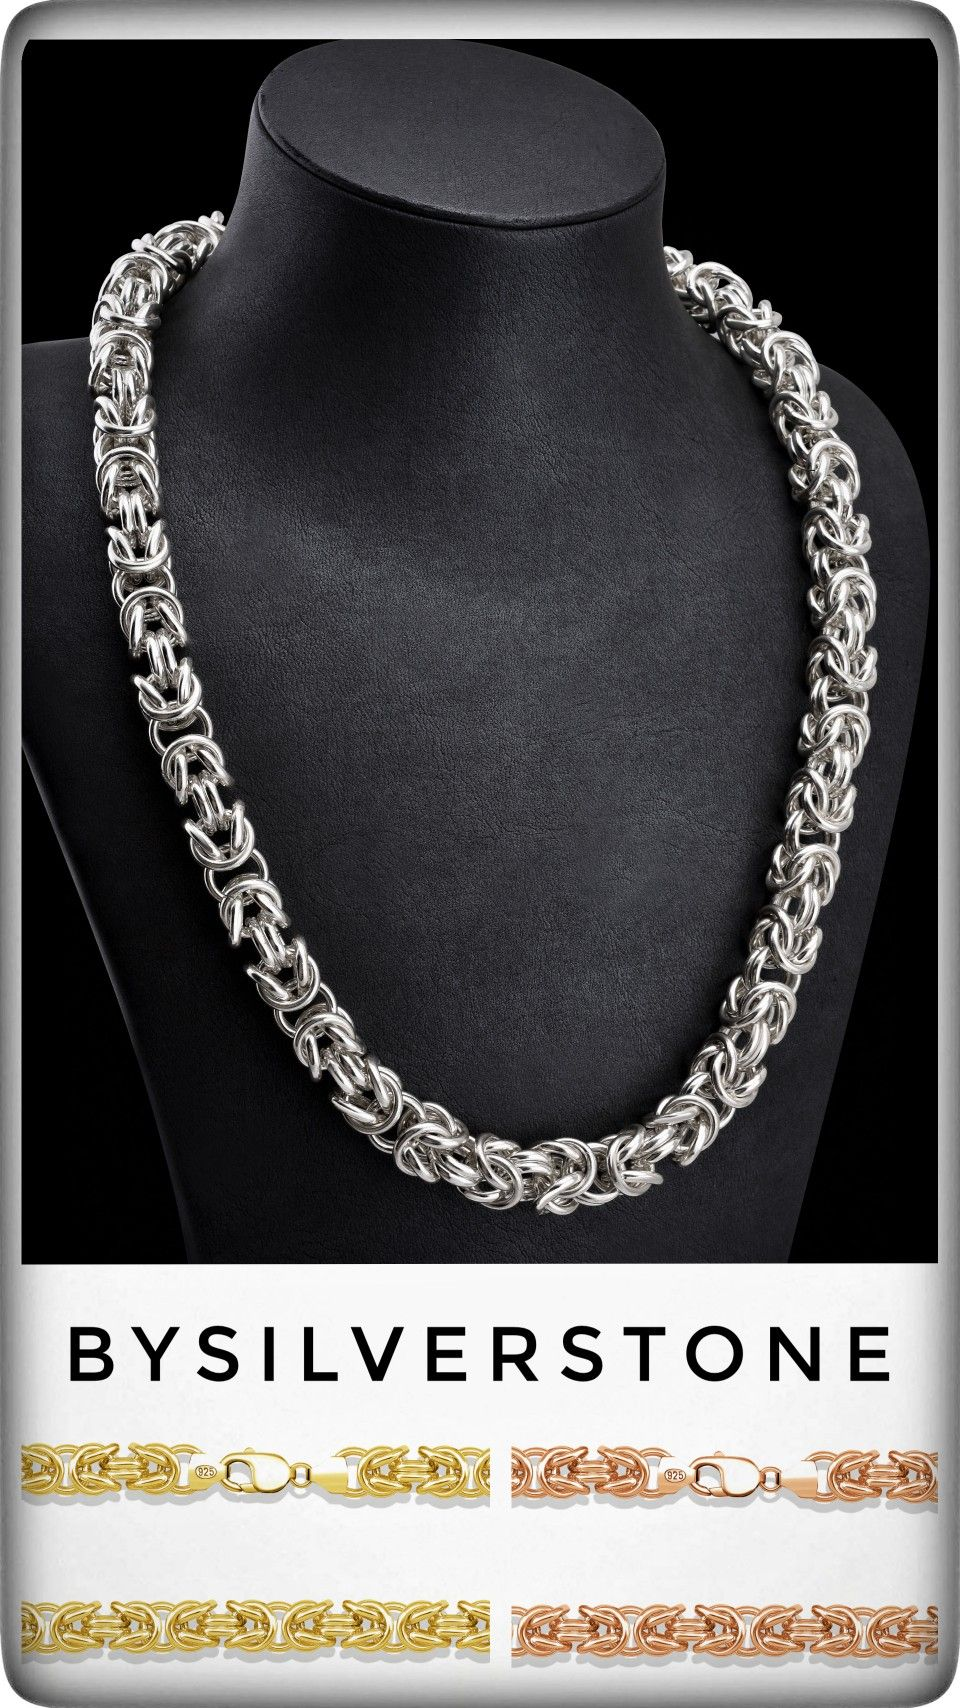 Mens Viking Chain Necklace Mens King Chain Necklace Etsy Mens Chain Necklace Silver Chain For Men Mens Silver Jewelry